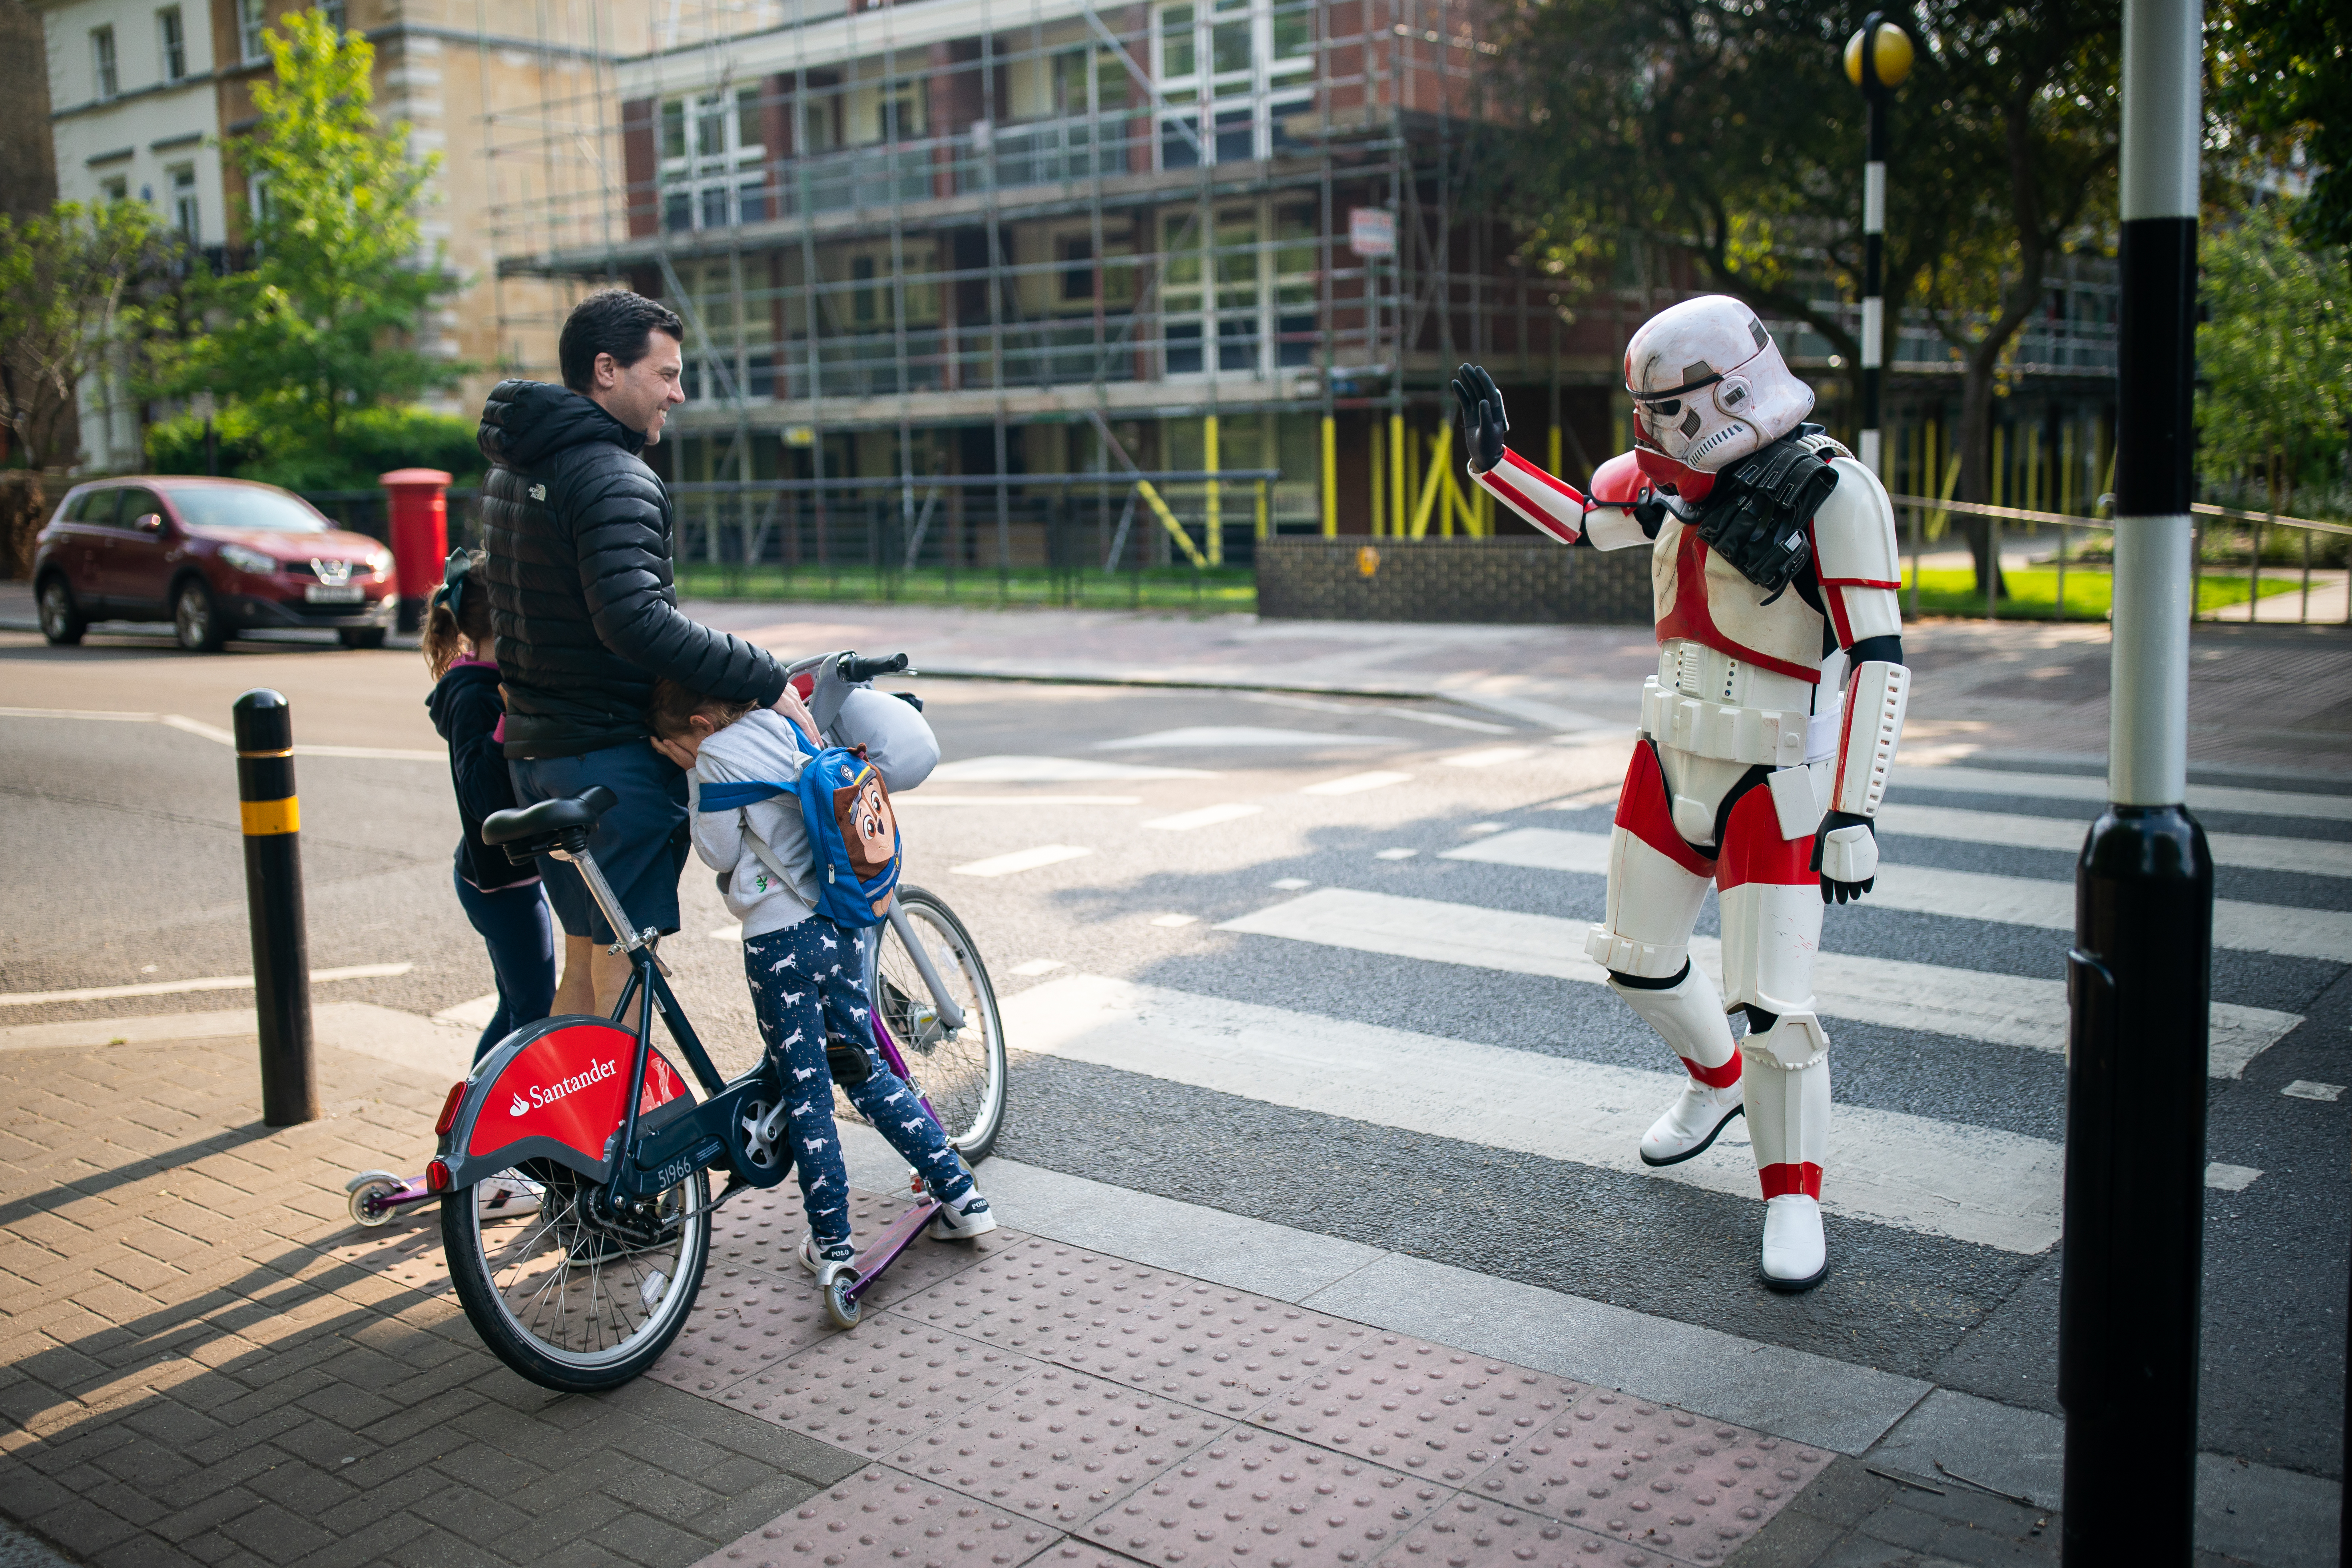 Sam Orchard dressed as a Stormtrooper out for for exercise in a South London park on the 4th May Star Wars Day 2020 as the UK continues in lockdown to help curb the spread of the coronavirus.